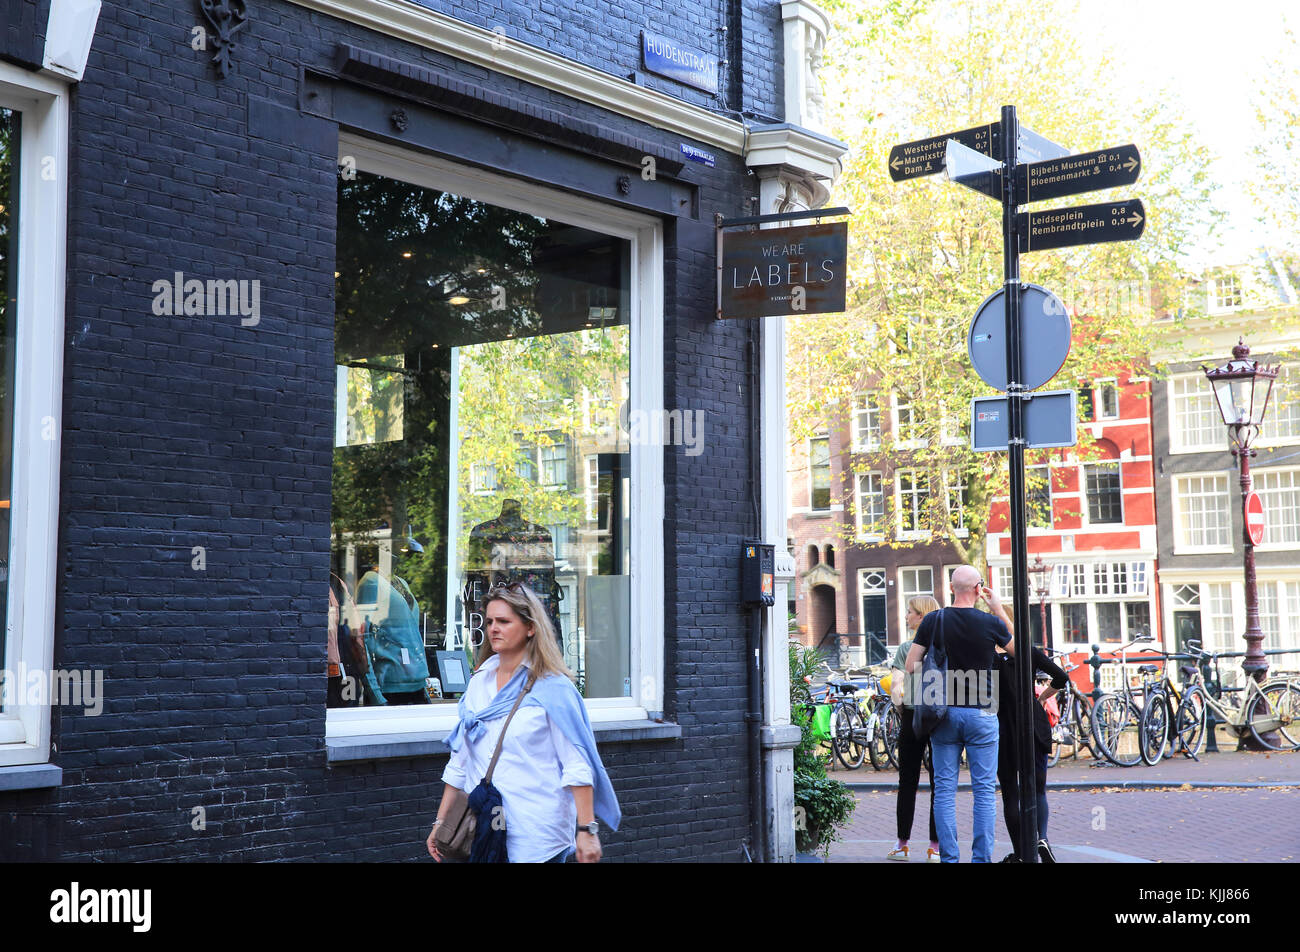 The chic boutiques on Huidenstraat, in the Nine Streets - De 9 Straatjes, in Amsterdam, in the Netherlands - Stock Image